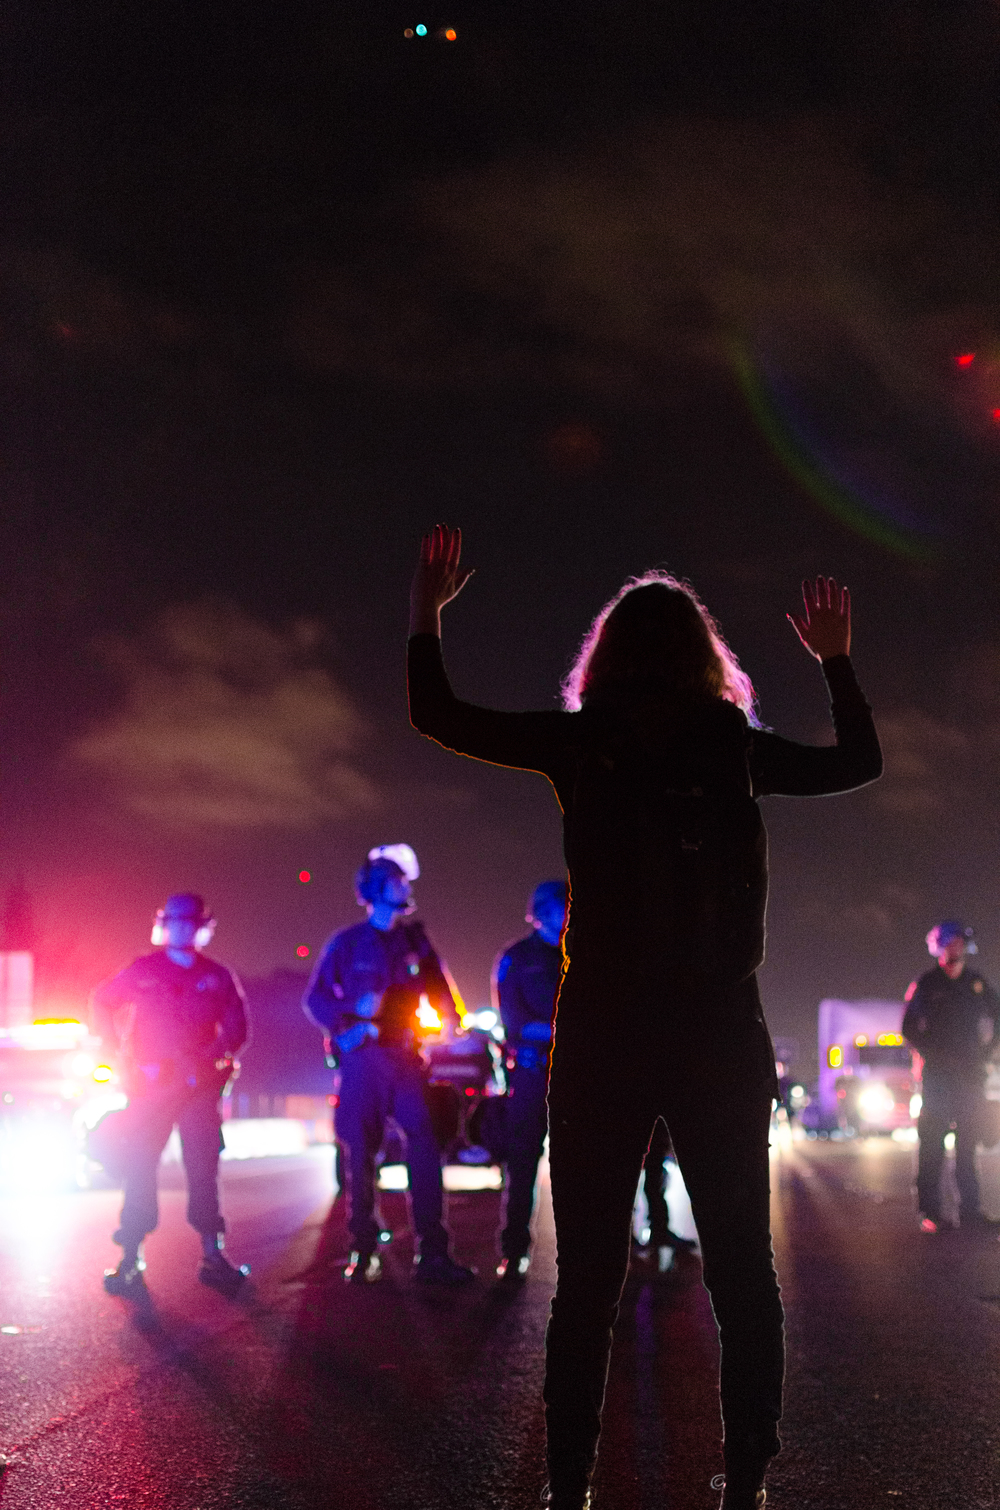 Woman facing police on the Northbound lane of Interstate 80 in Berkeley, CA on December 8th, 2014 - photo by Kyle Cameron